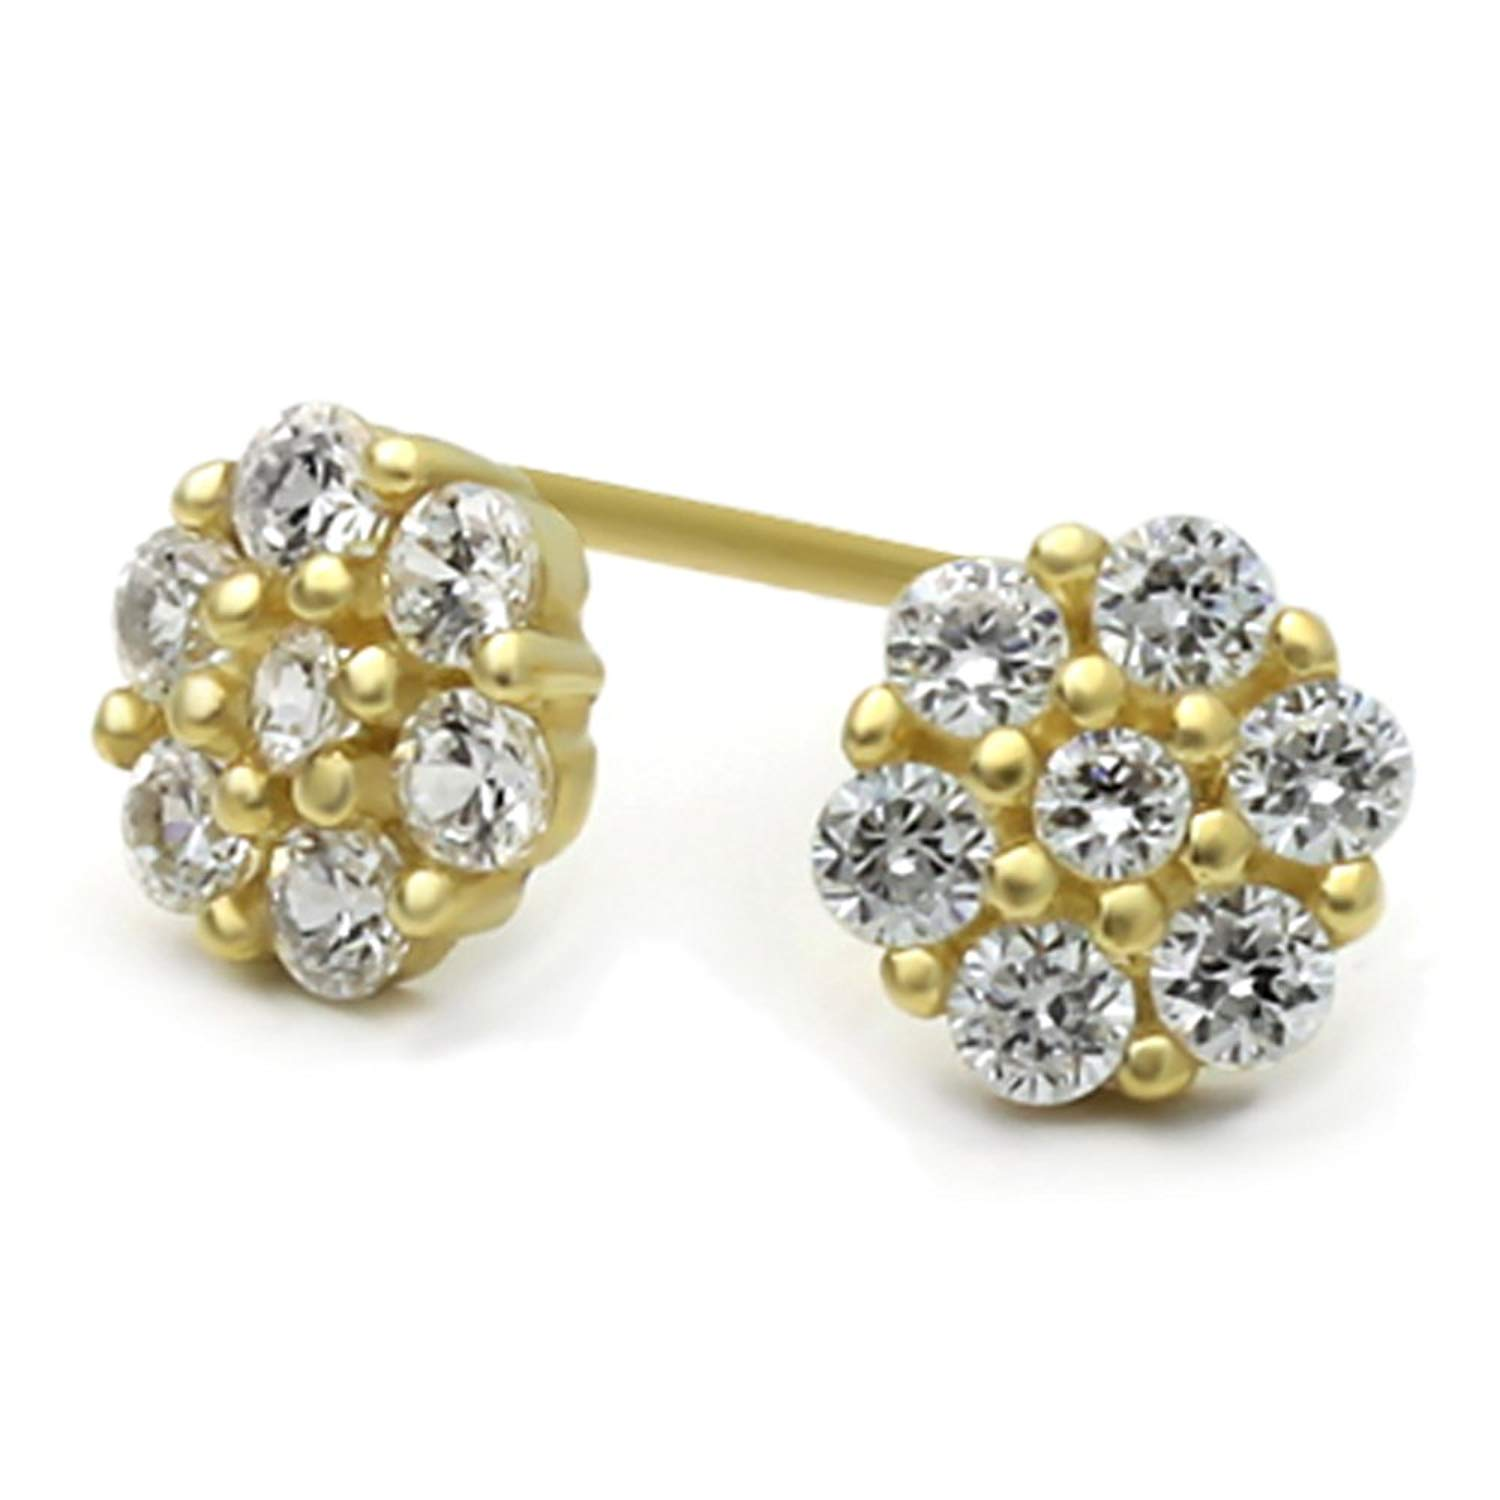 Get Quotations 14k Yellow Gold Round Cubic Zirconia Cer Flower Back Stud Earrings